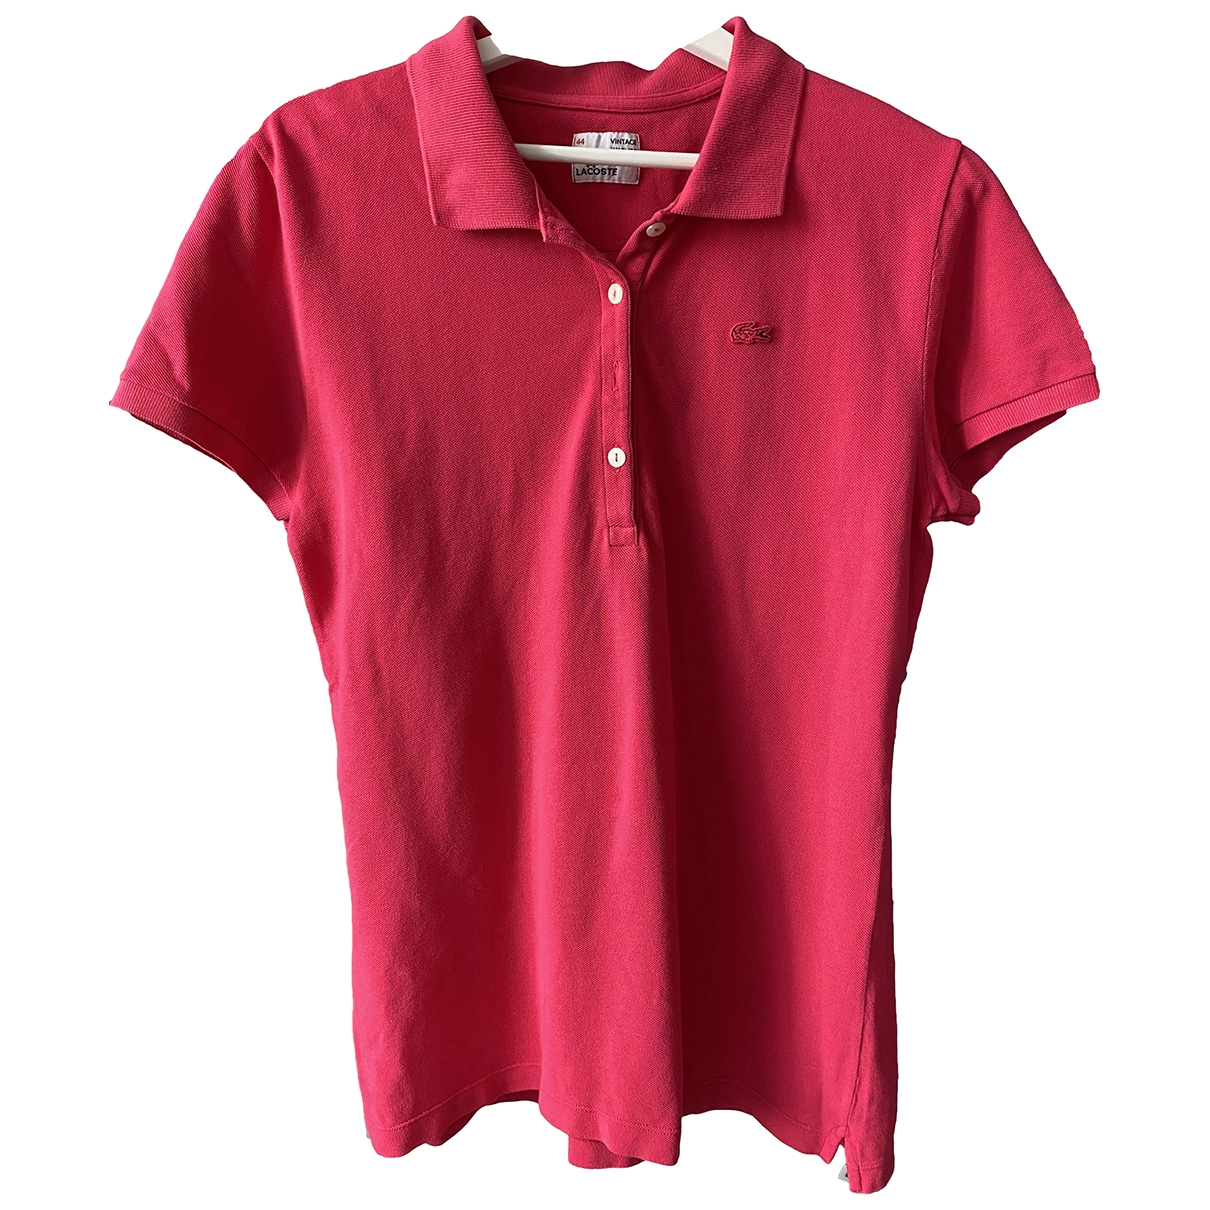 Lacoste \N Pink Cotton  top for Women S International